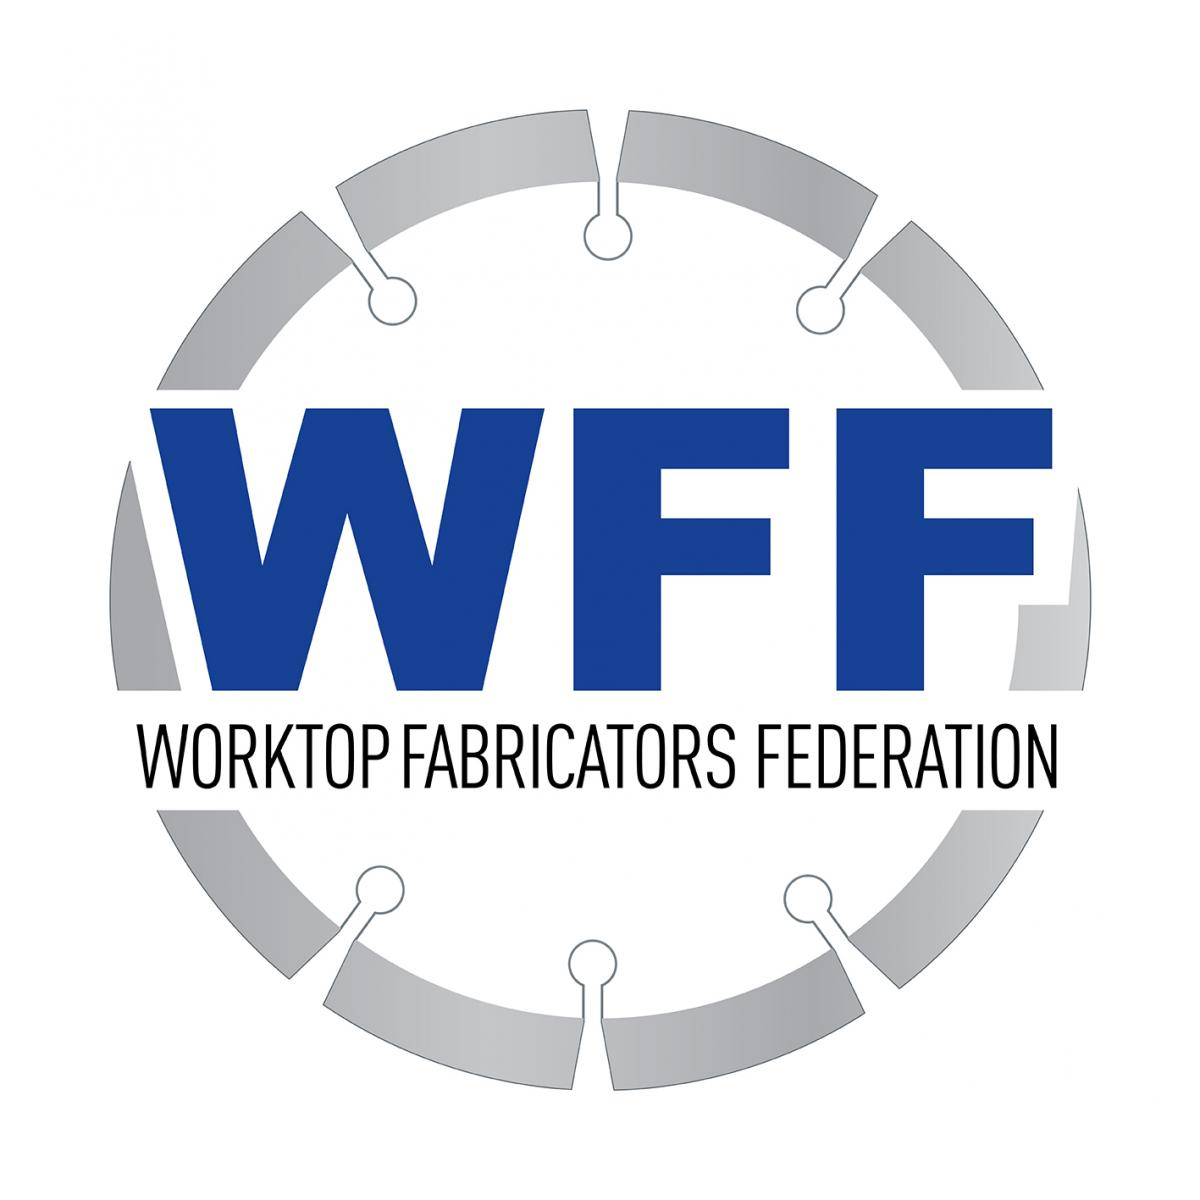 Worktop Fabricators Federation logo